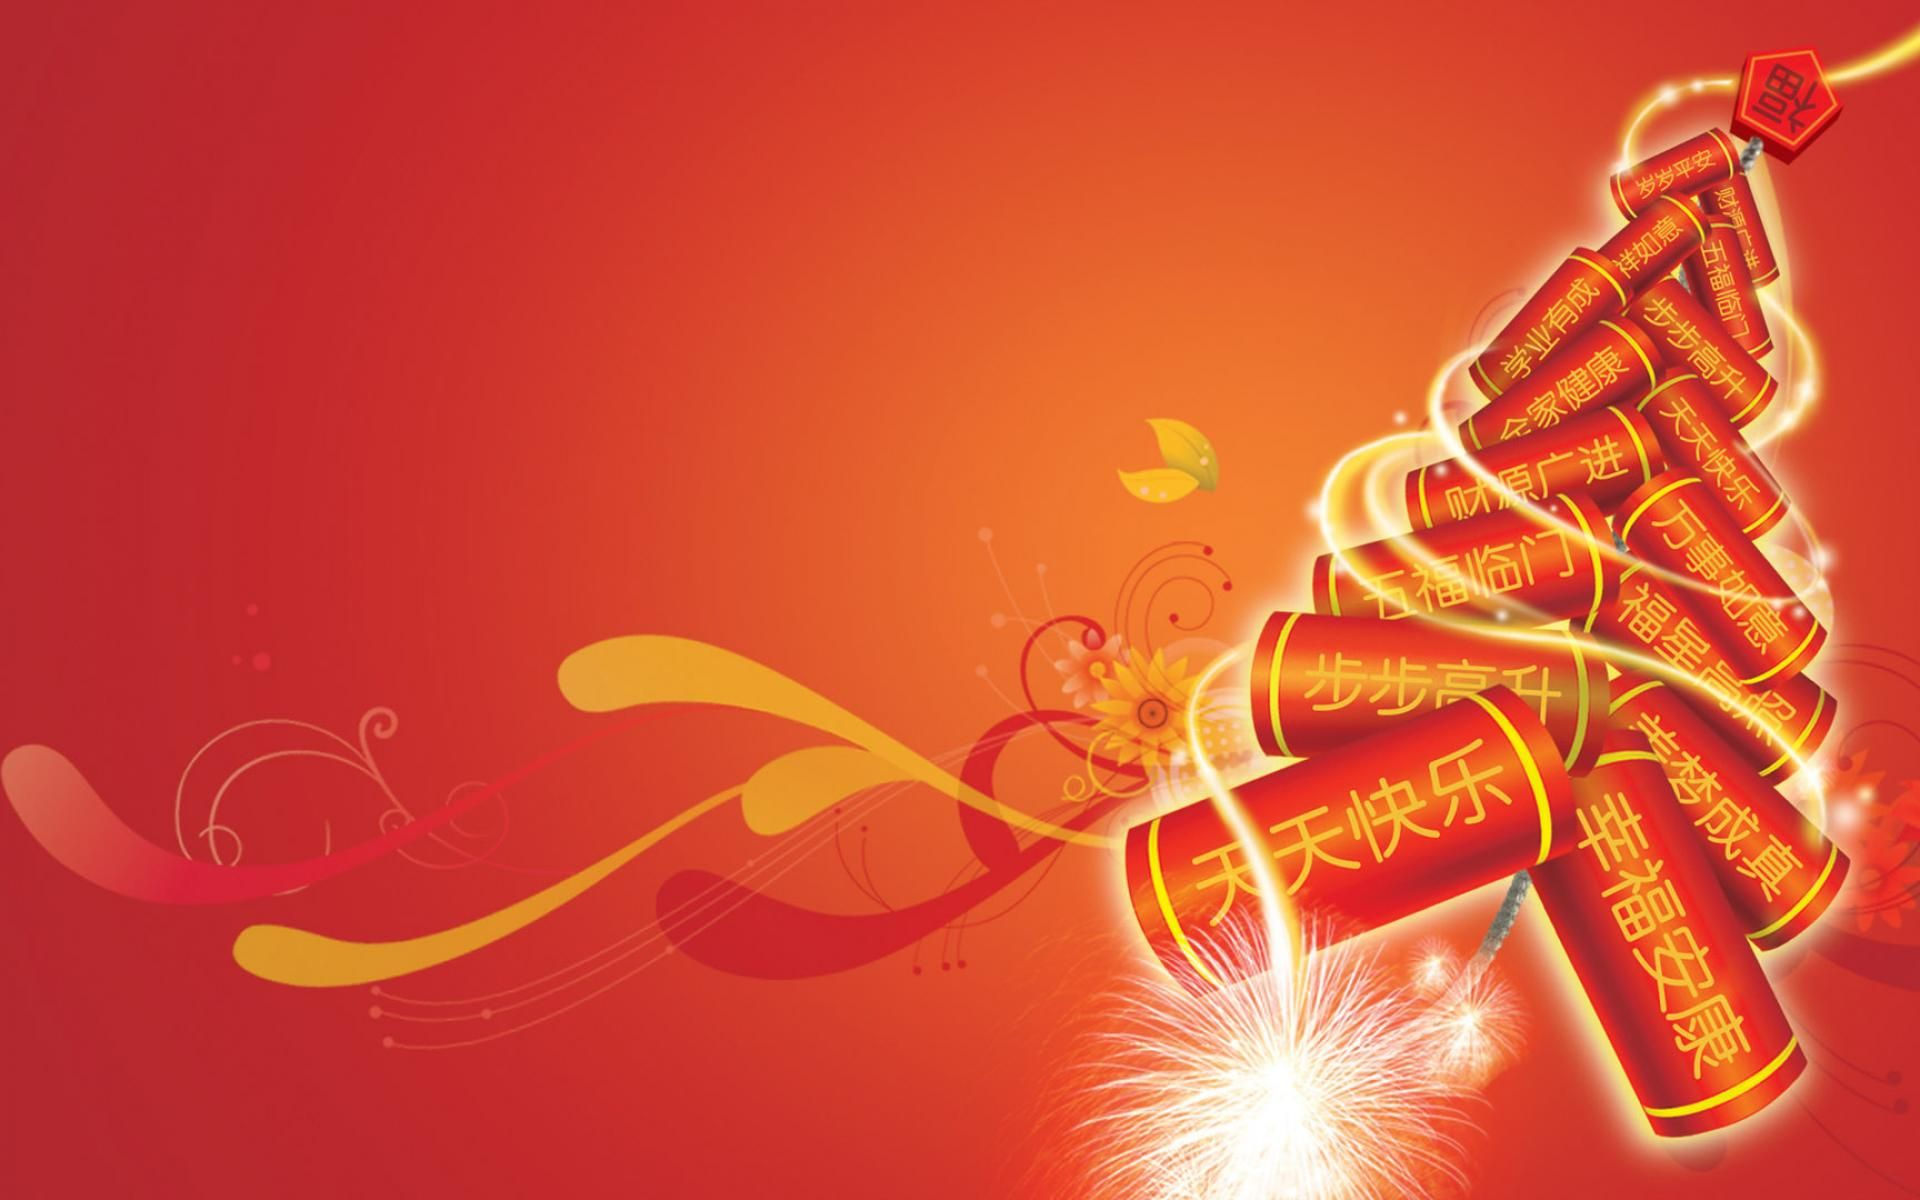 chinese new year wallpaper - wallpapersafari